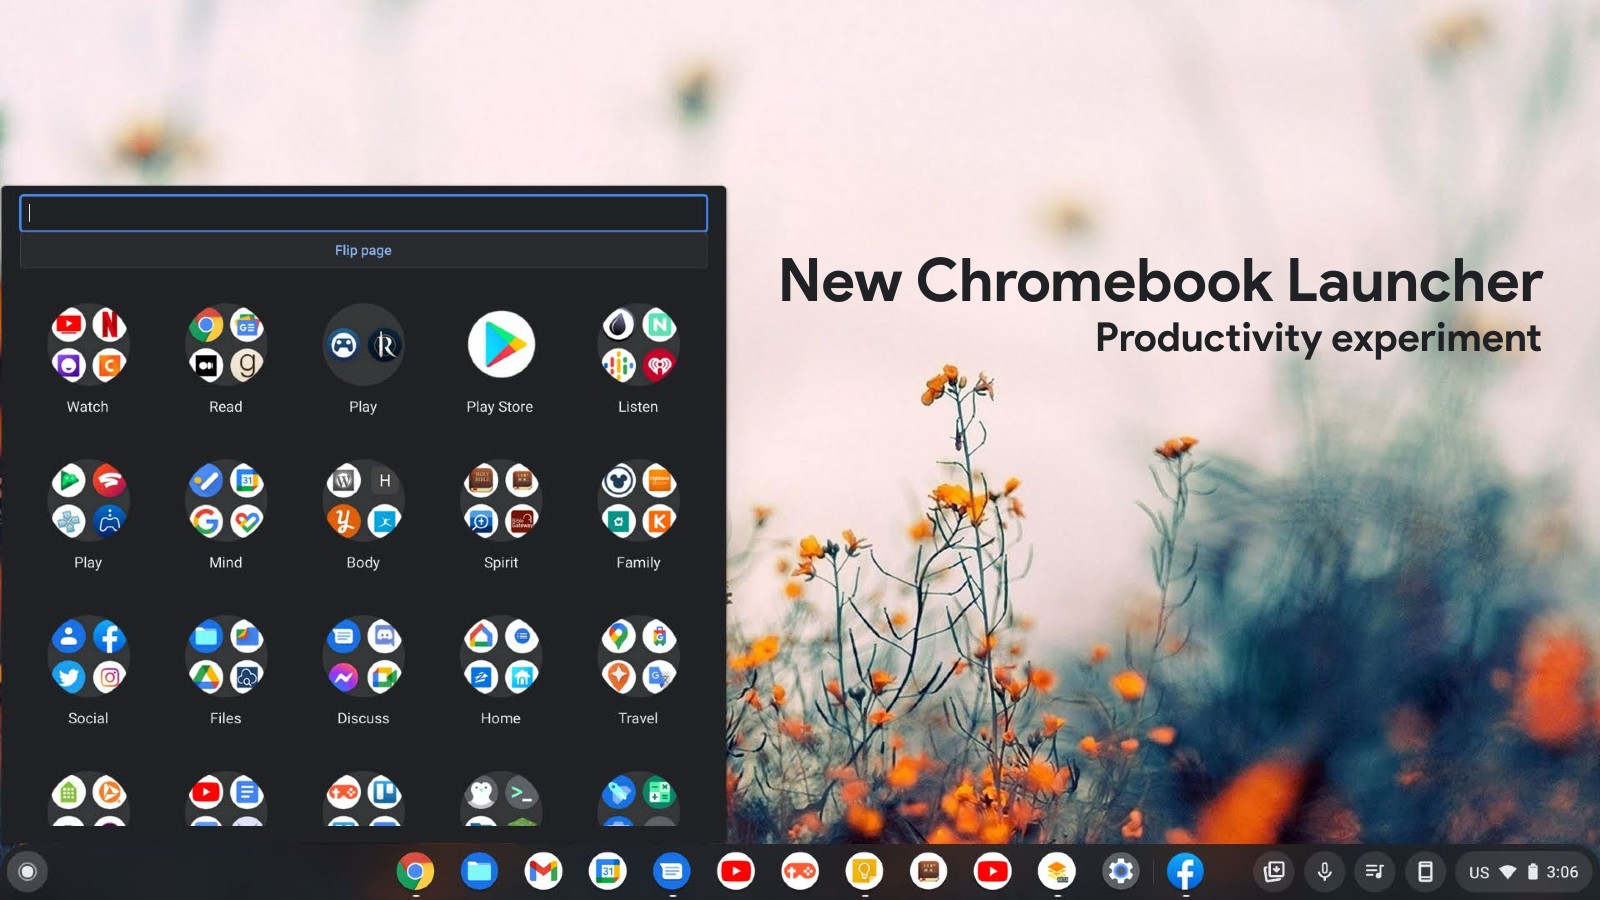 [Video] Here's what Google's new productivity launcher could look like when it's finished